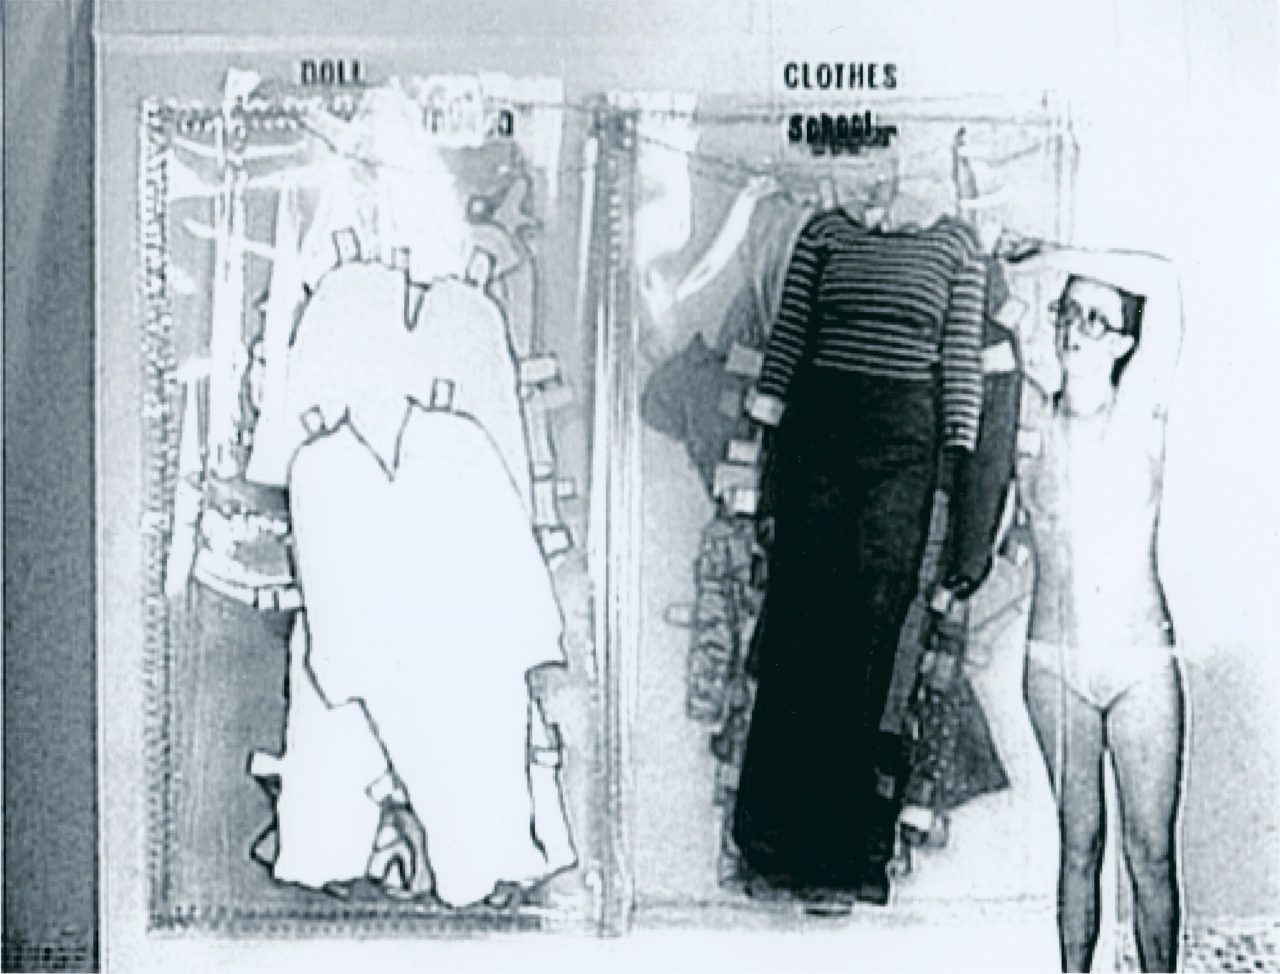 Doll Clothes directed by Cindy Sherman